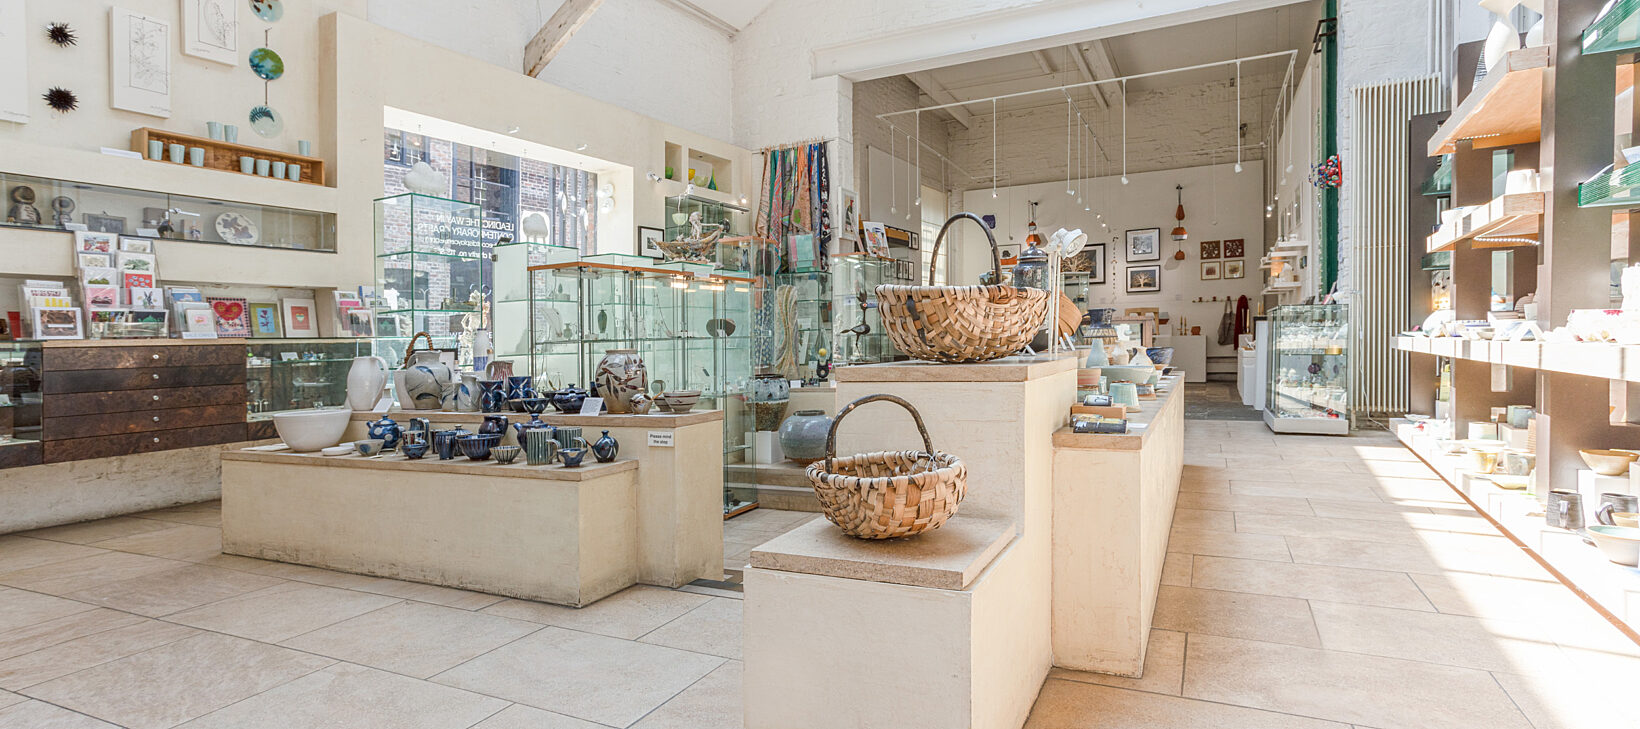 Image displays the interior of Bluecoat Display Centre shop, with shelves of various gifts.